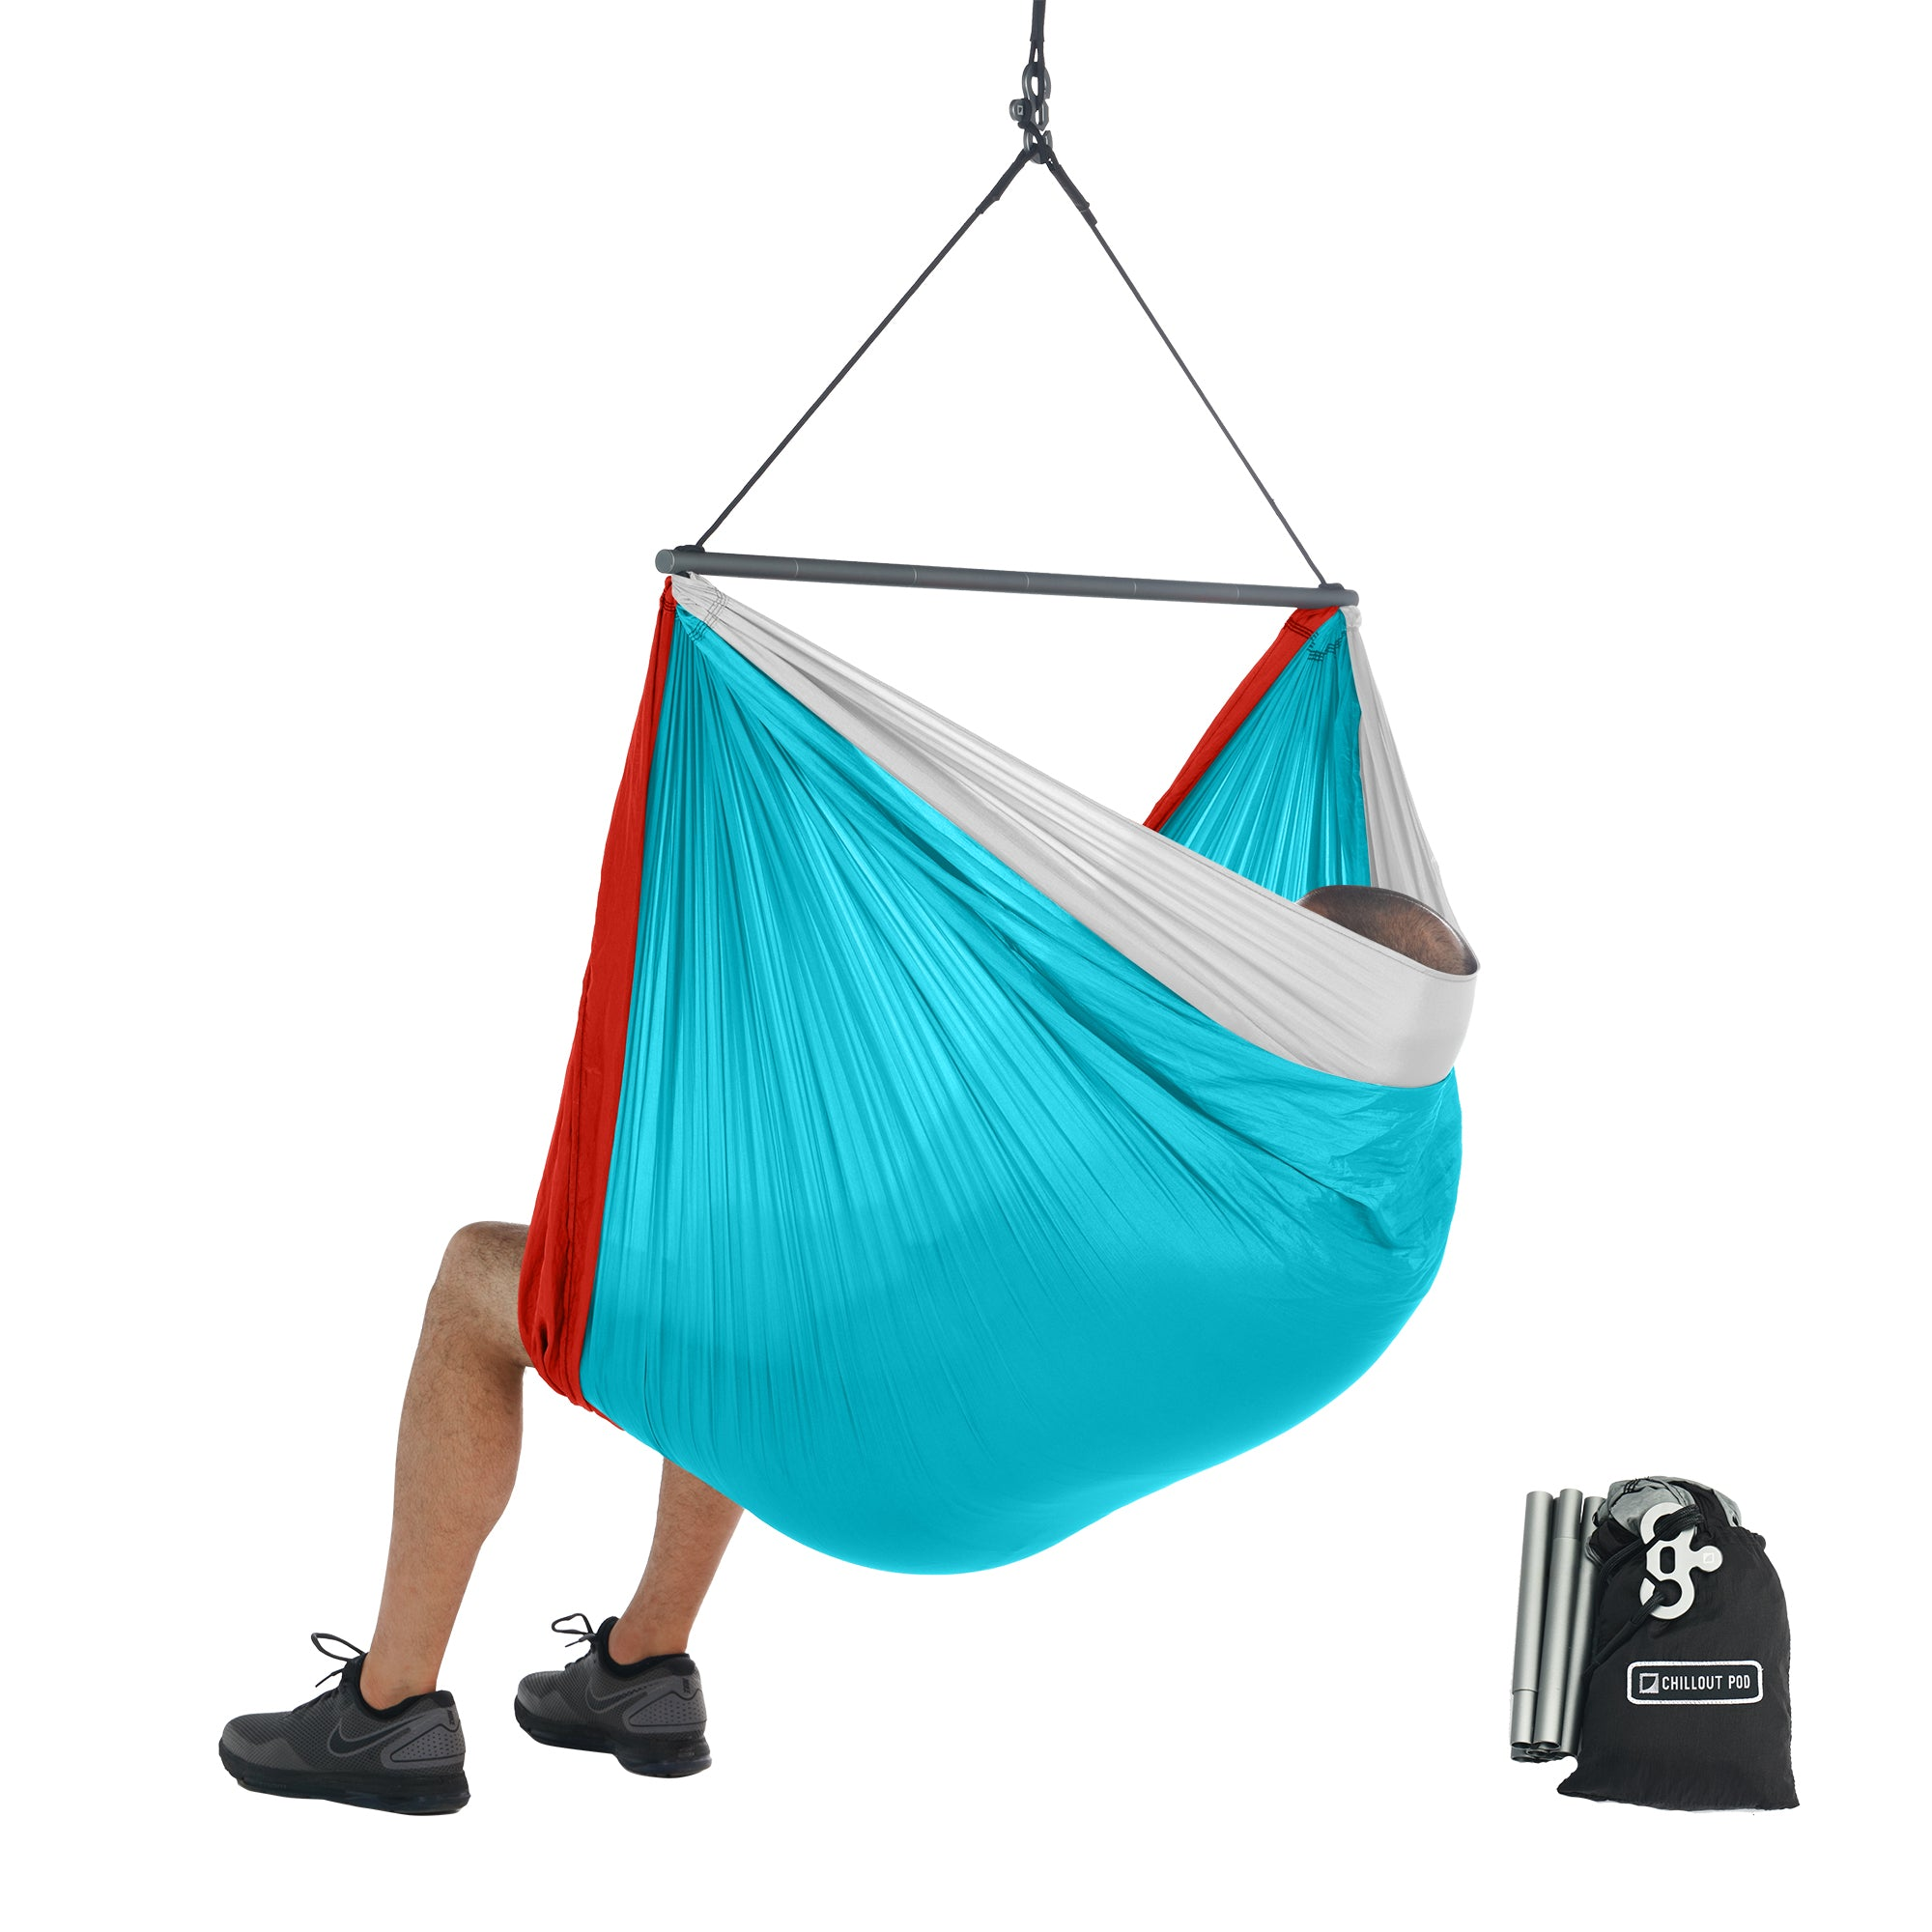 Foldable Hanging Chair Portable Hammock Chair Sky Blue Red White Chillout Pod